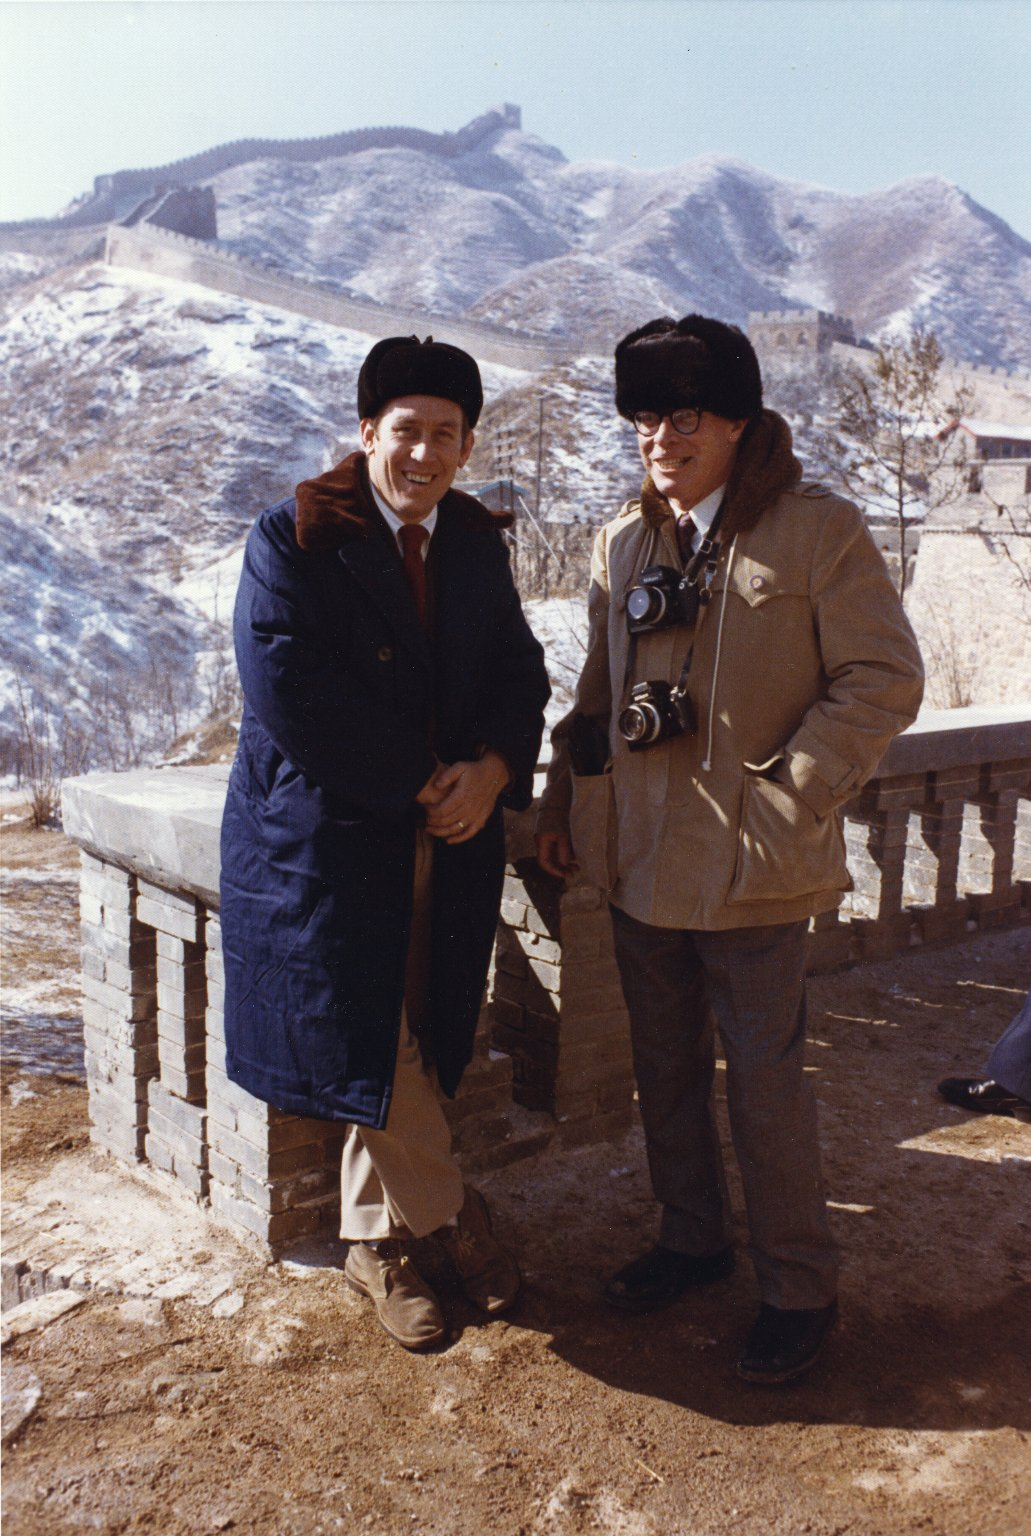 Oliver Atkins poses with Ron Walker in front of the Great Wall of China